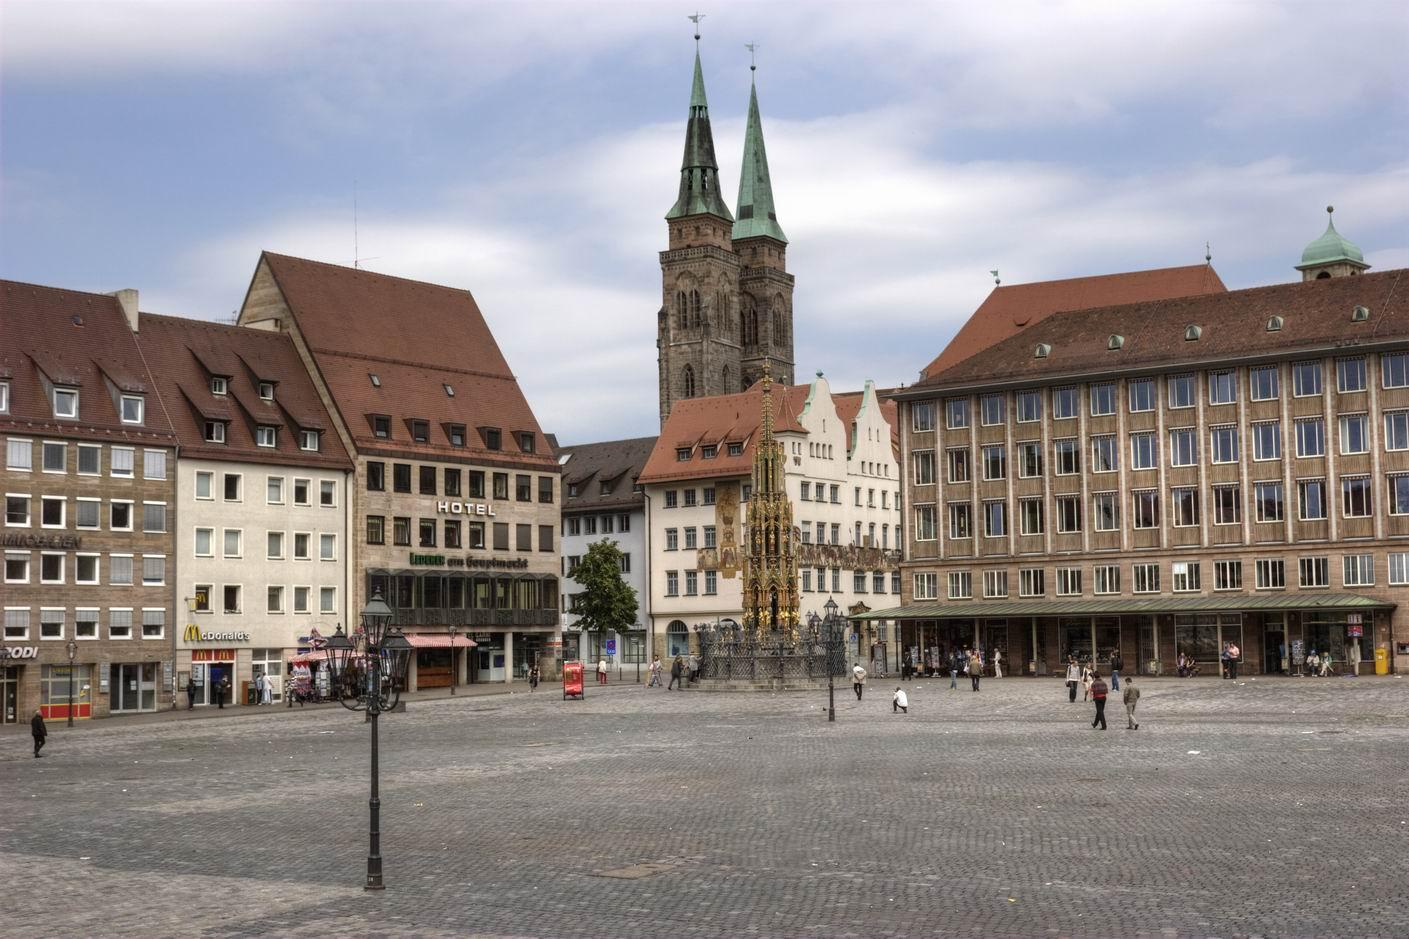 Nuremberg Germany Blog about interesting places